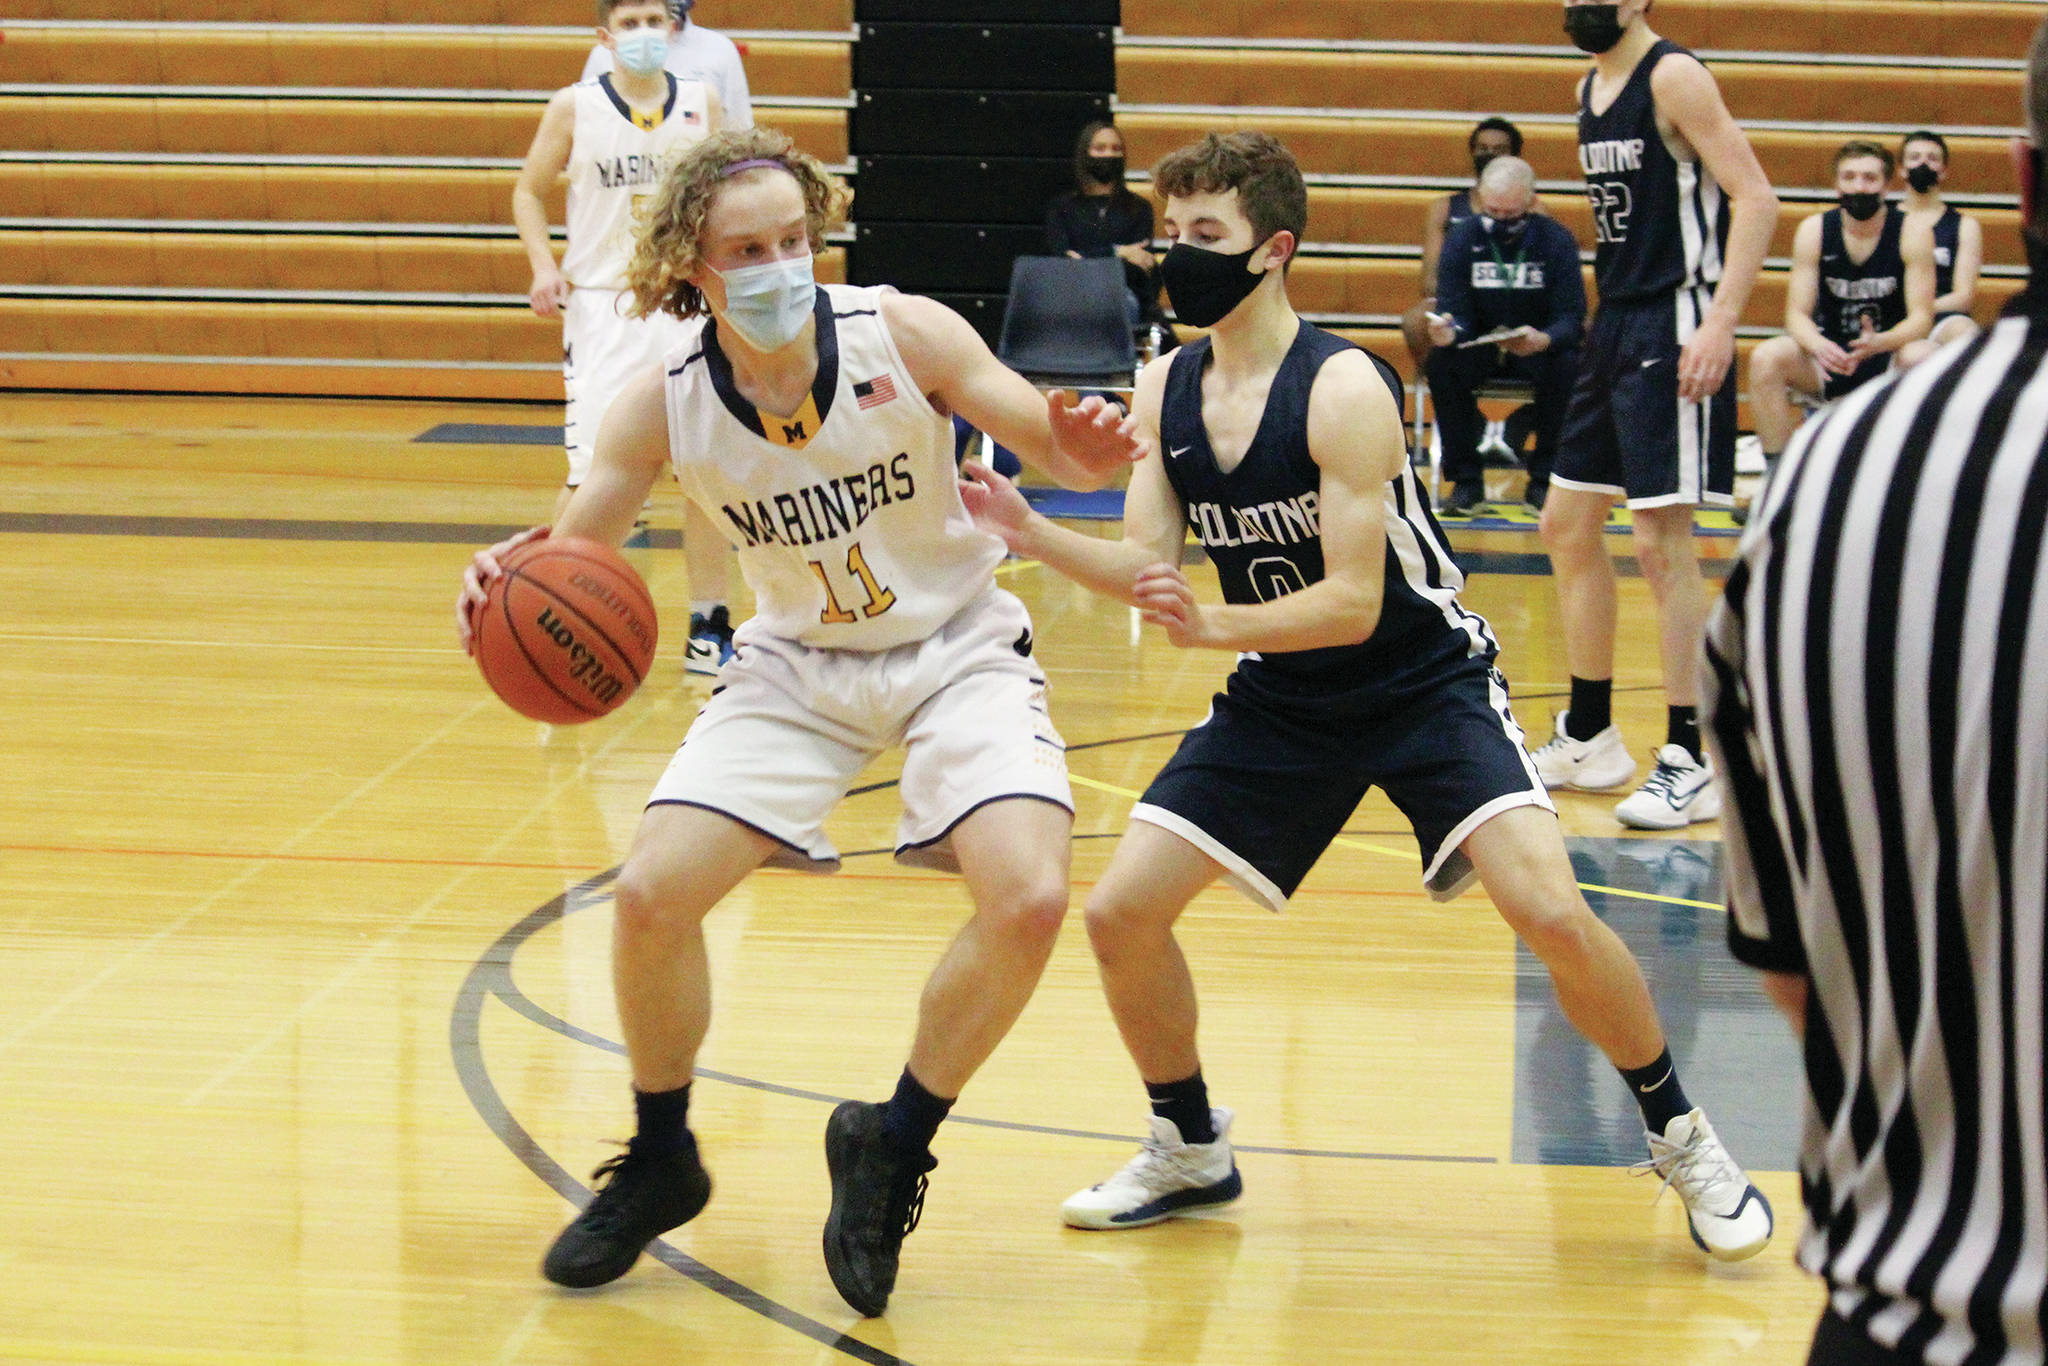 Soldotna's Zac Buckbee defends against Homer's Parker Lowney during a Tuesday, March 2, 2021 basketball game in the Alice Witte Gymnasium in Homer, Alaska. (Photo by Megan Pacer/Homer News)